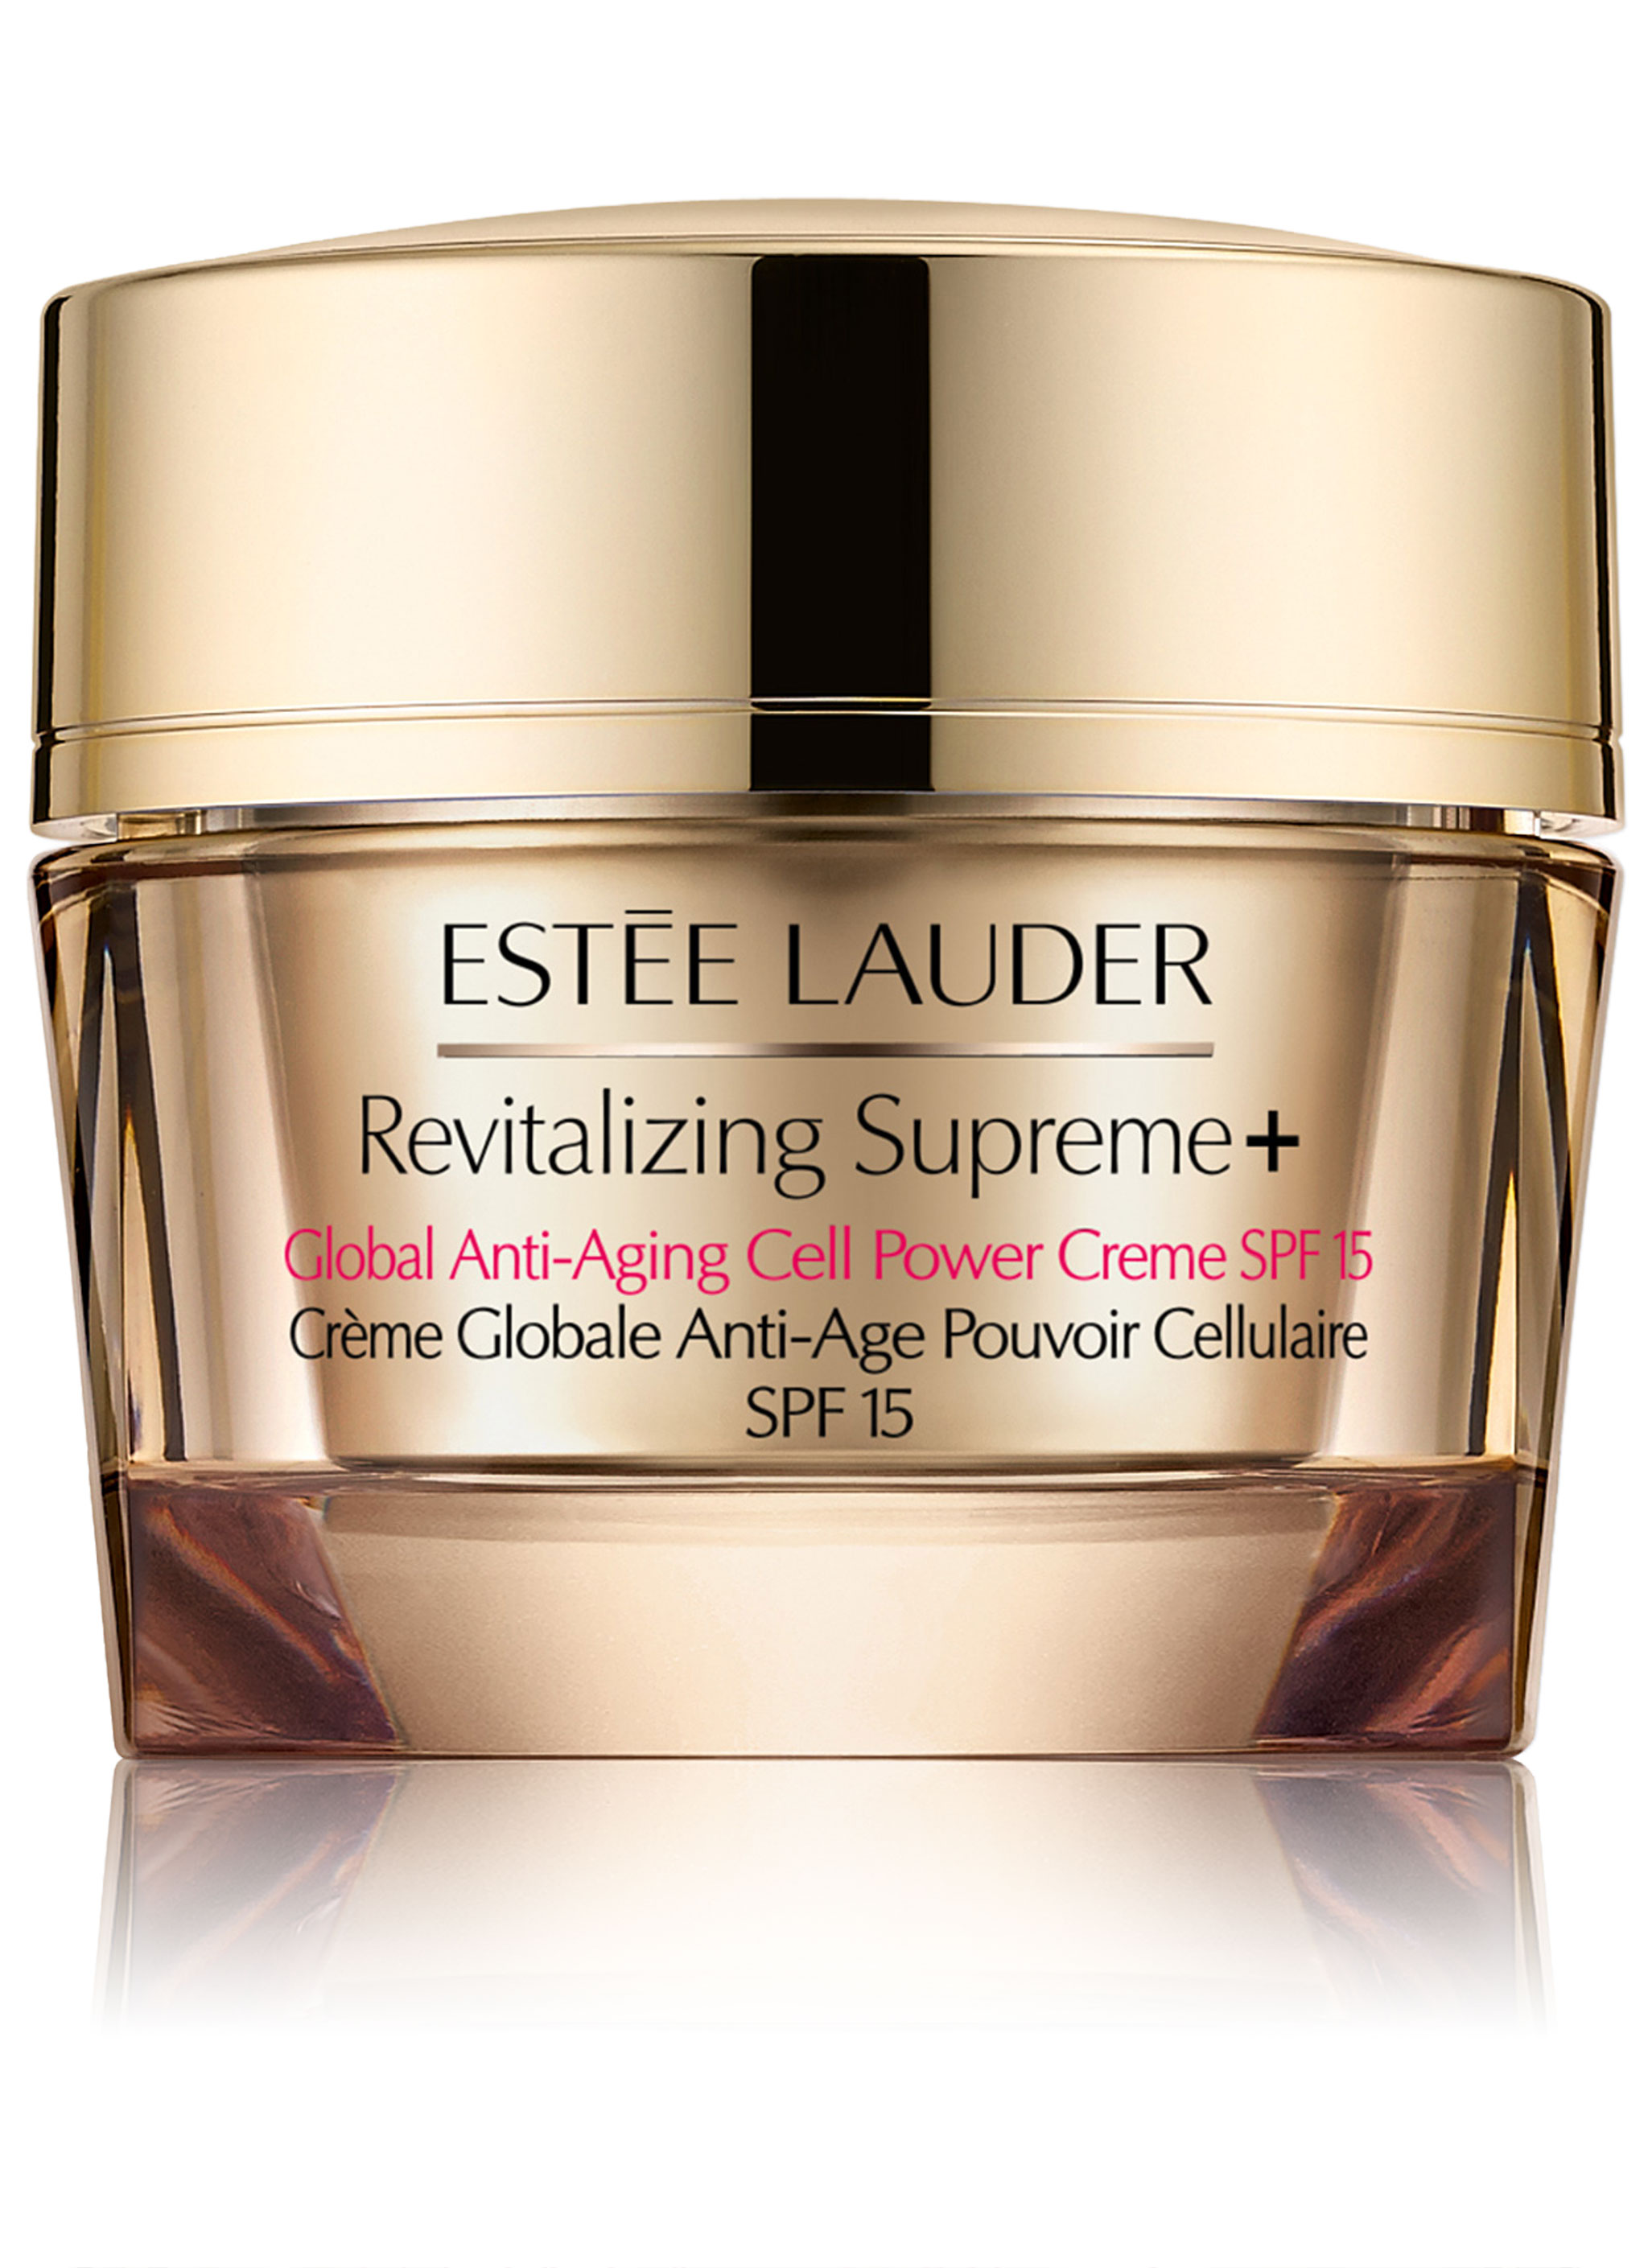 Revitalizing Supreme+ Global Anti-Aging Cell Power Creme SPF 15 50ml